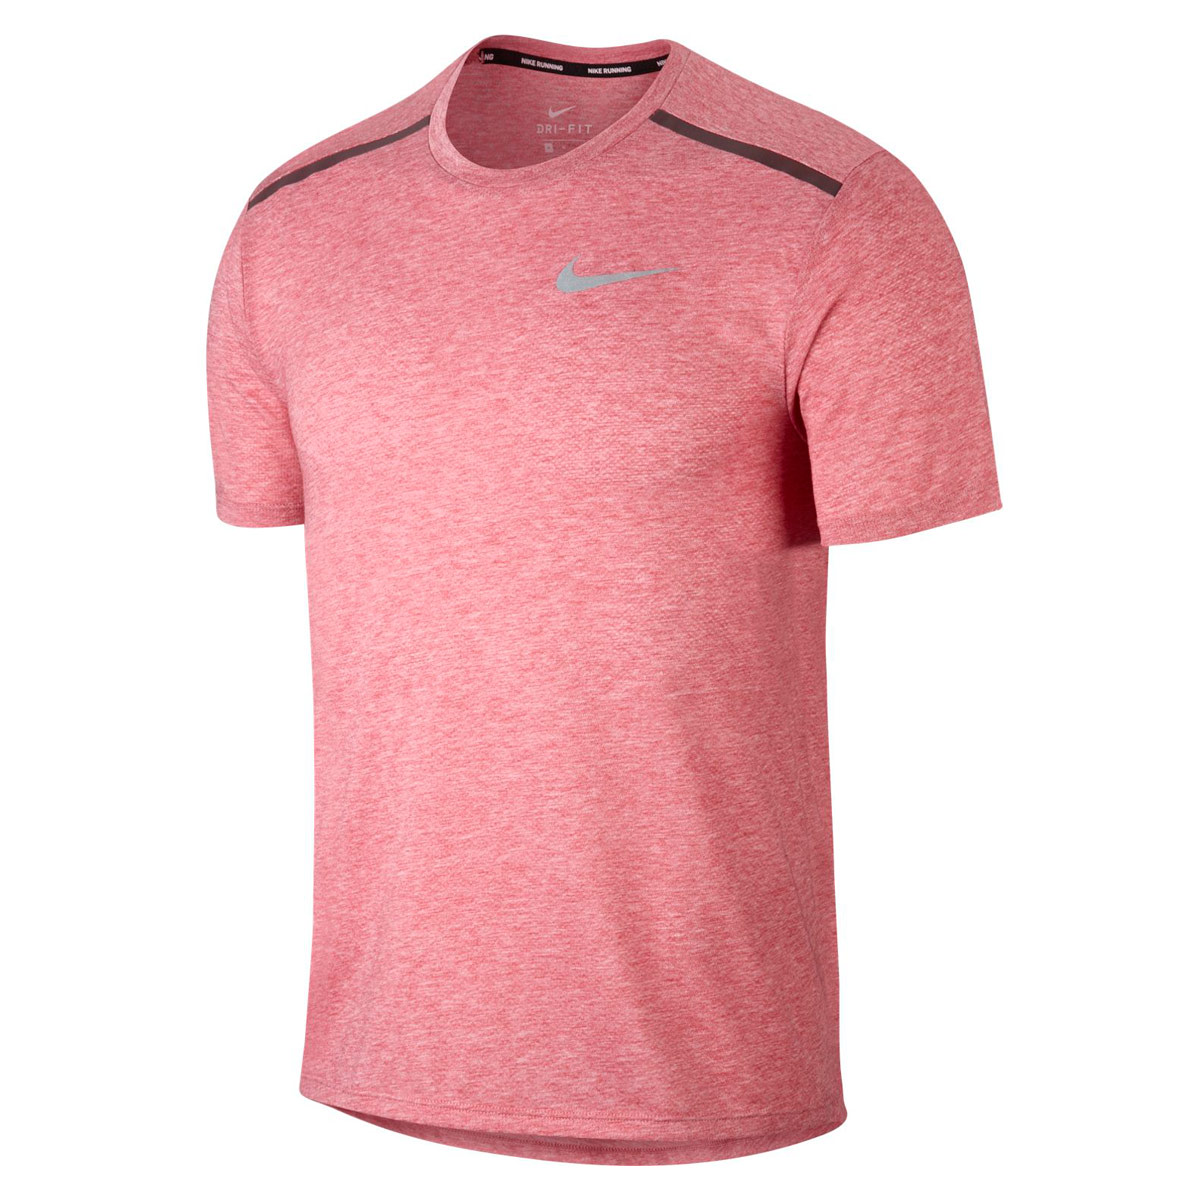 15b86e888 Nike Breathe Rise 365 Short Sleeve Top - Running tops for Men - Red ...